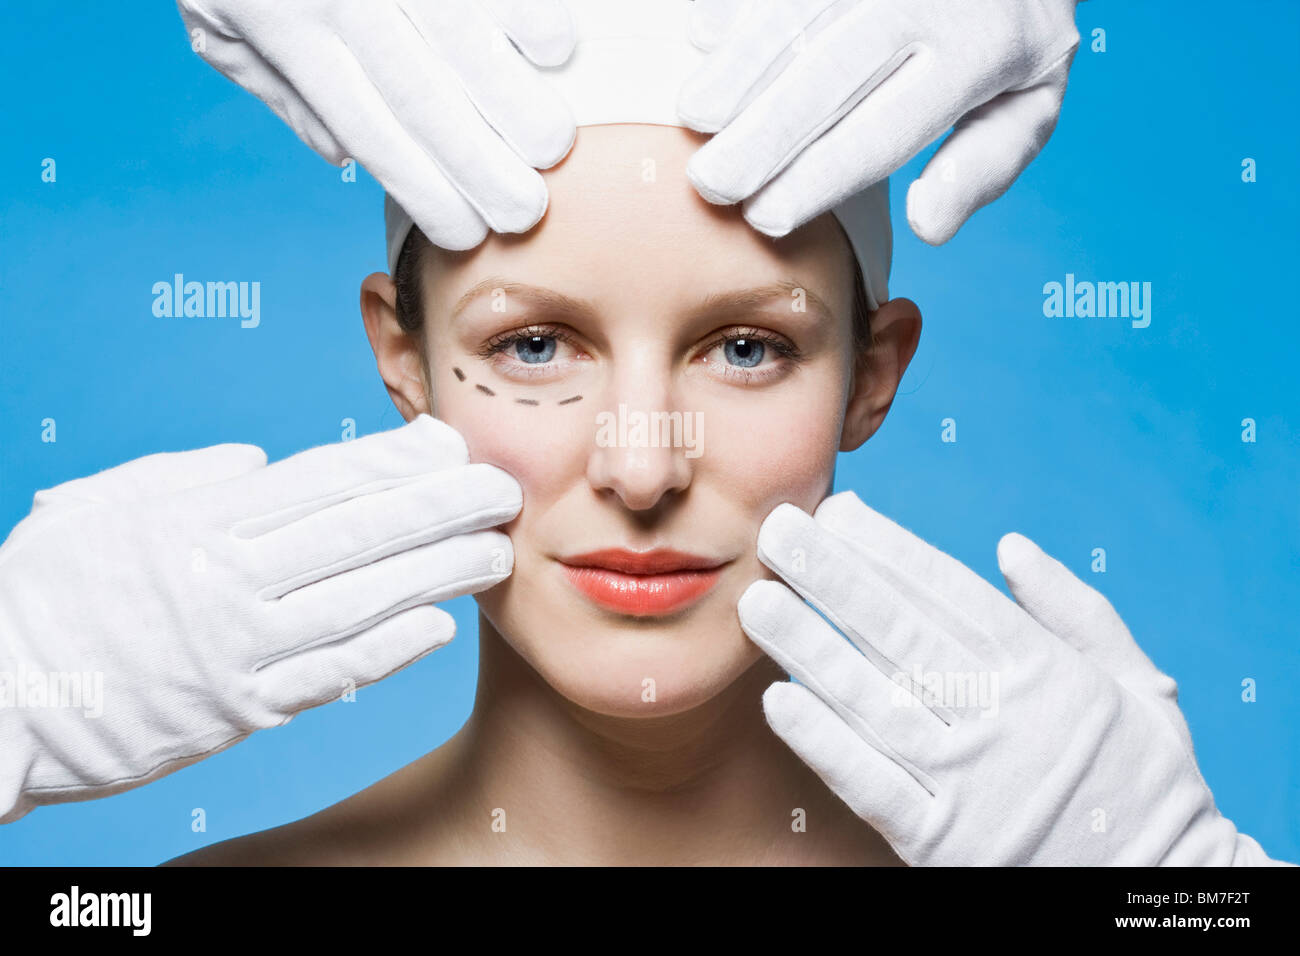 Two healthcare workers, detail of hands, preparing a woman for plastic surgery, headshot - Stock Image